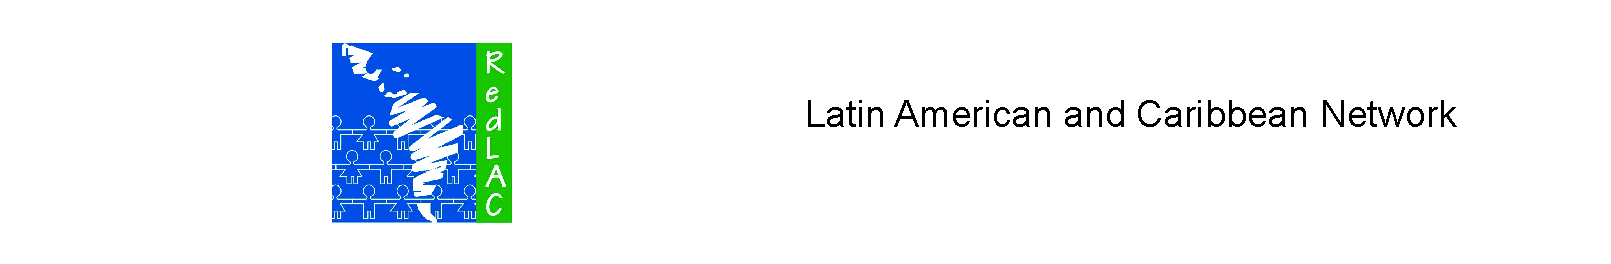 Latin American and Caribbean Network